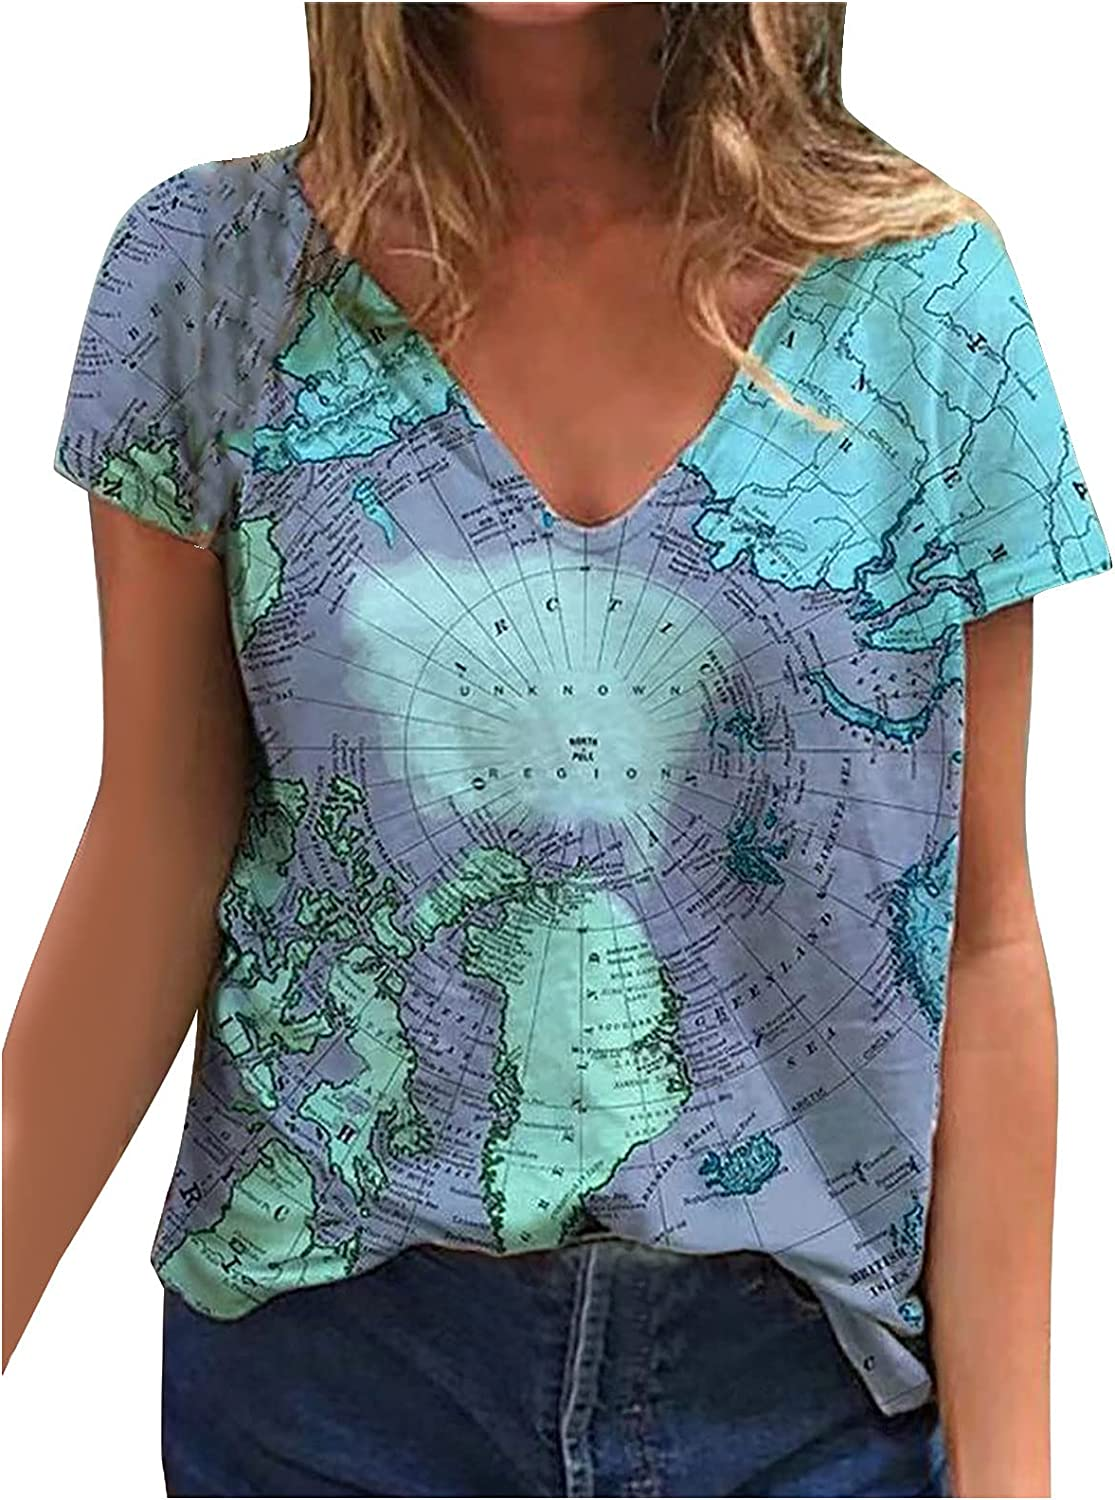 Workout Summer T-Shirts for Women Digital Map Printed Tops V-Neck Graphic Tees Stylish Short Sleeve Blouses